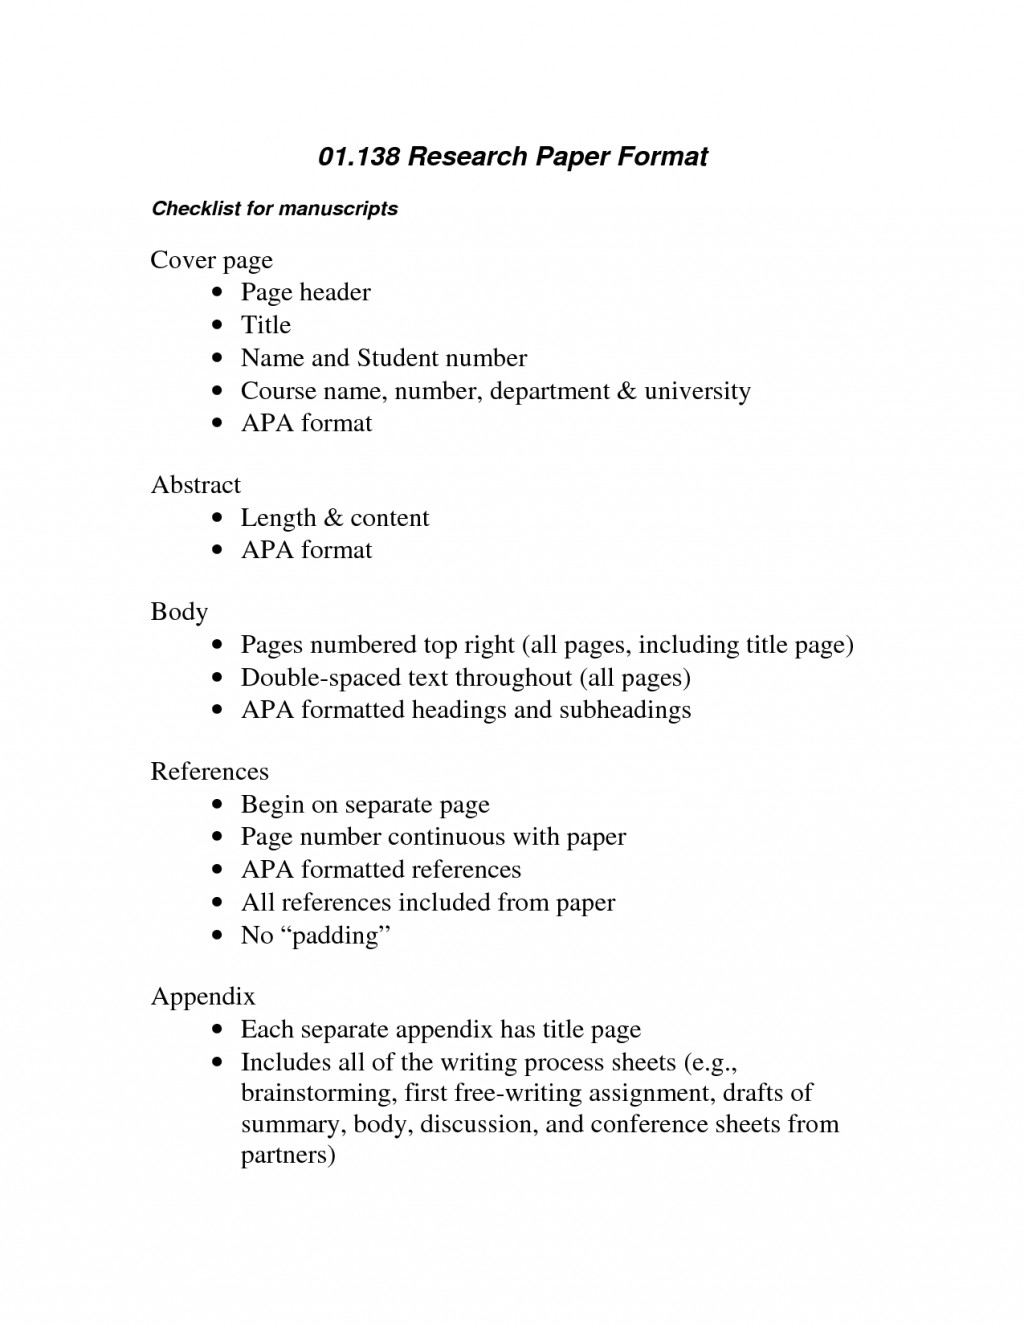 007 How To Write References In Research Paper Ppt Writing Process Awful Large